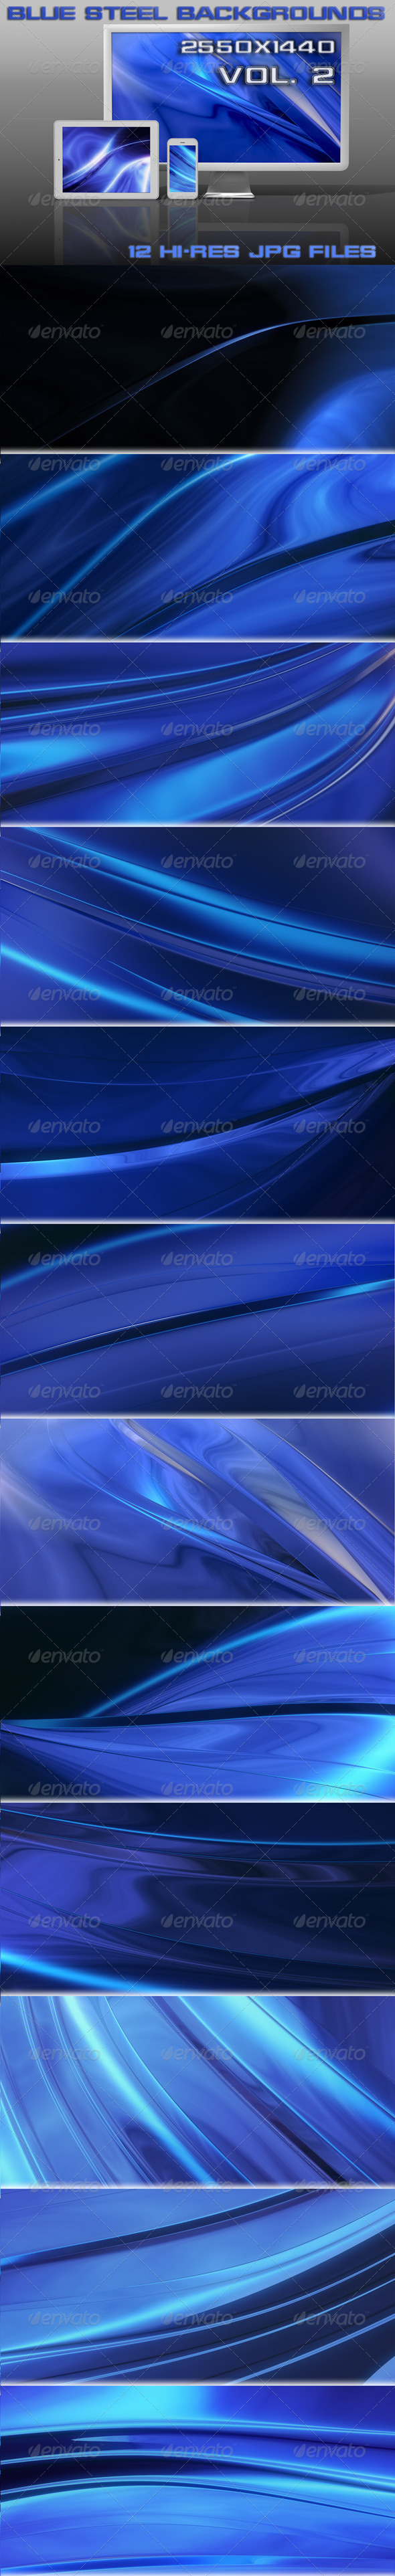 GraphicRiver Blue Steel Backgrounds 5416315